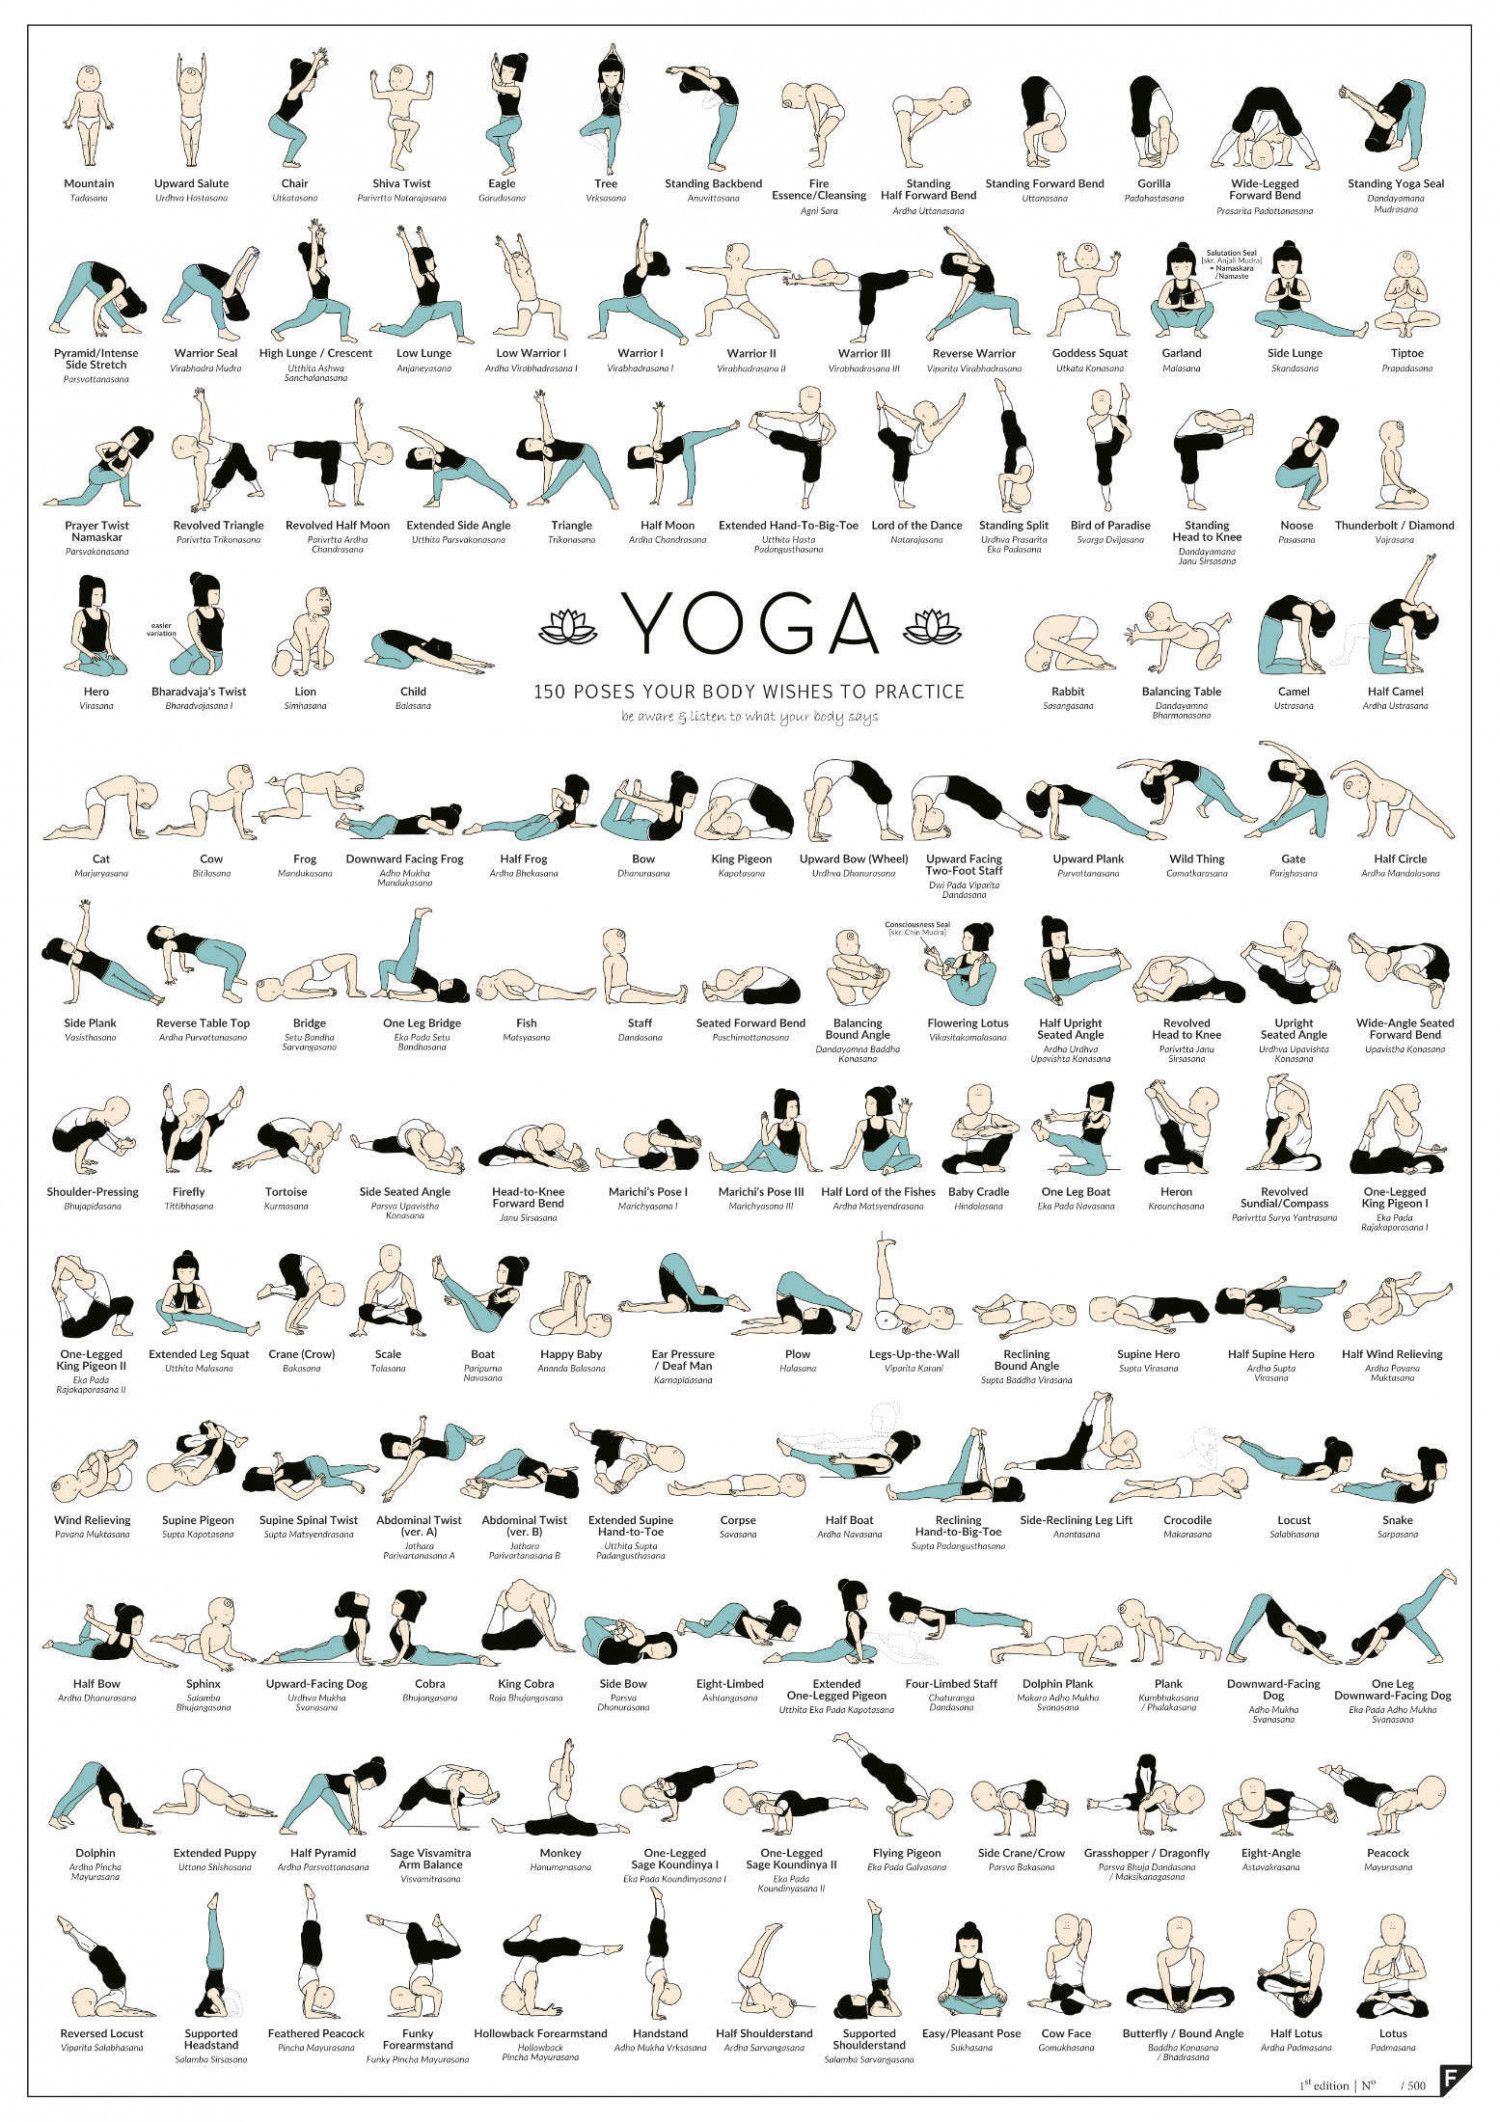 Yoga - 38 Poses Your Body Wishes to Practice Infographic  Yoga